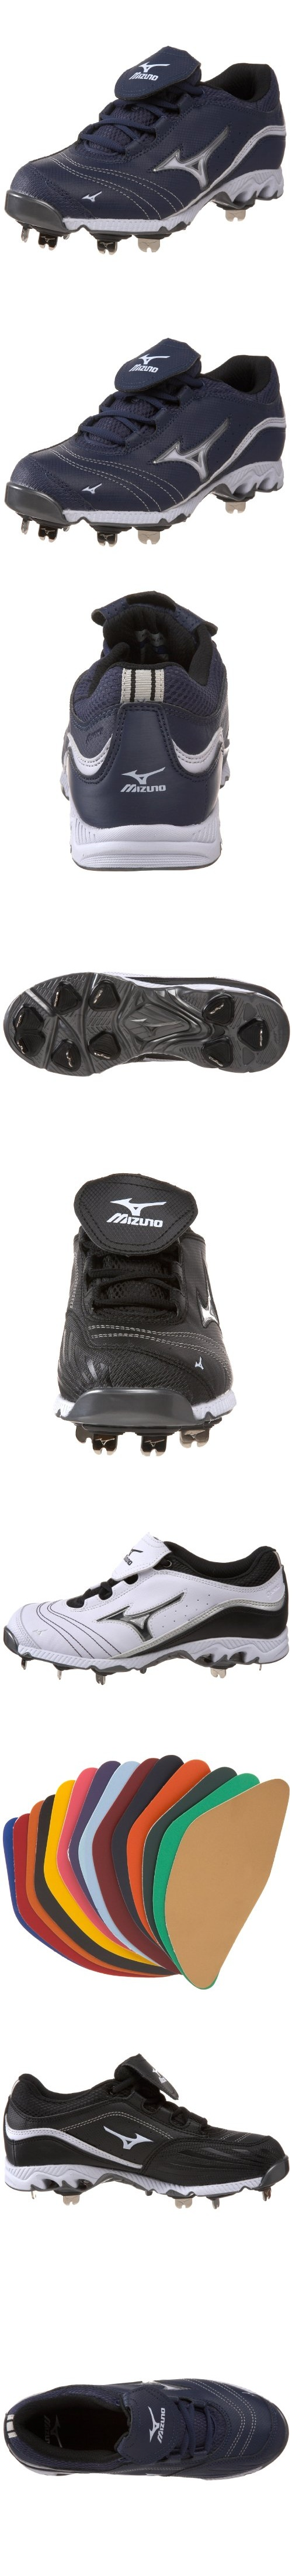 Mizuno Women's 9-Spike Swift G2 Switch Softball Metal Cleat - Mizuno Swift G2 Metal Cleats...Great Surface Grip! Mizuno is the premier company and supplier of baseball equipment to professionals for a reason. The fastpitch spike is specifically designed for comf... - Metal Cleats - Apparel